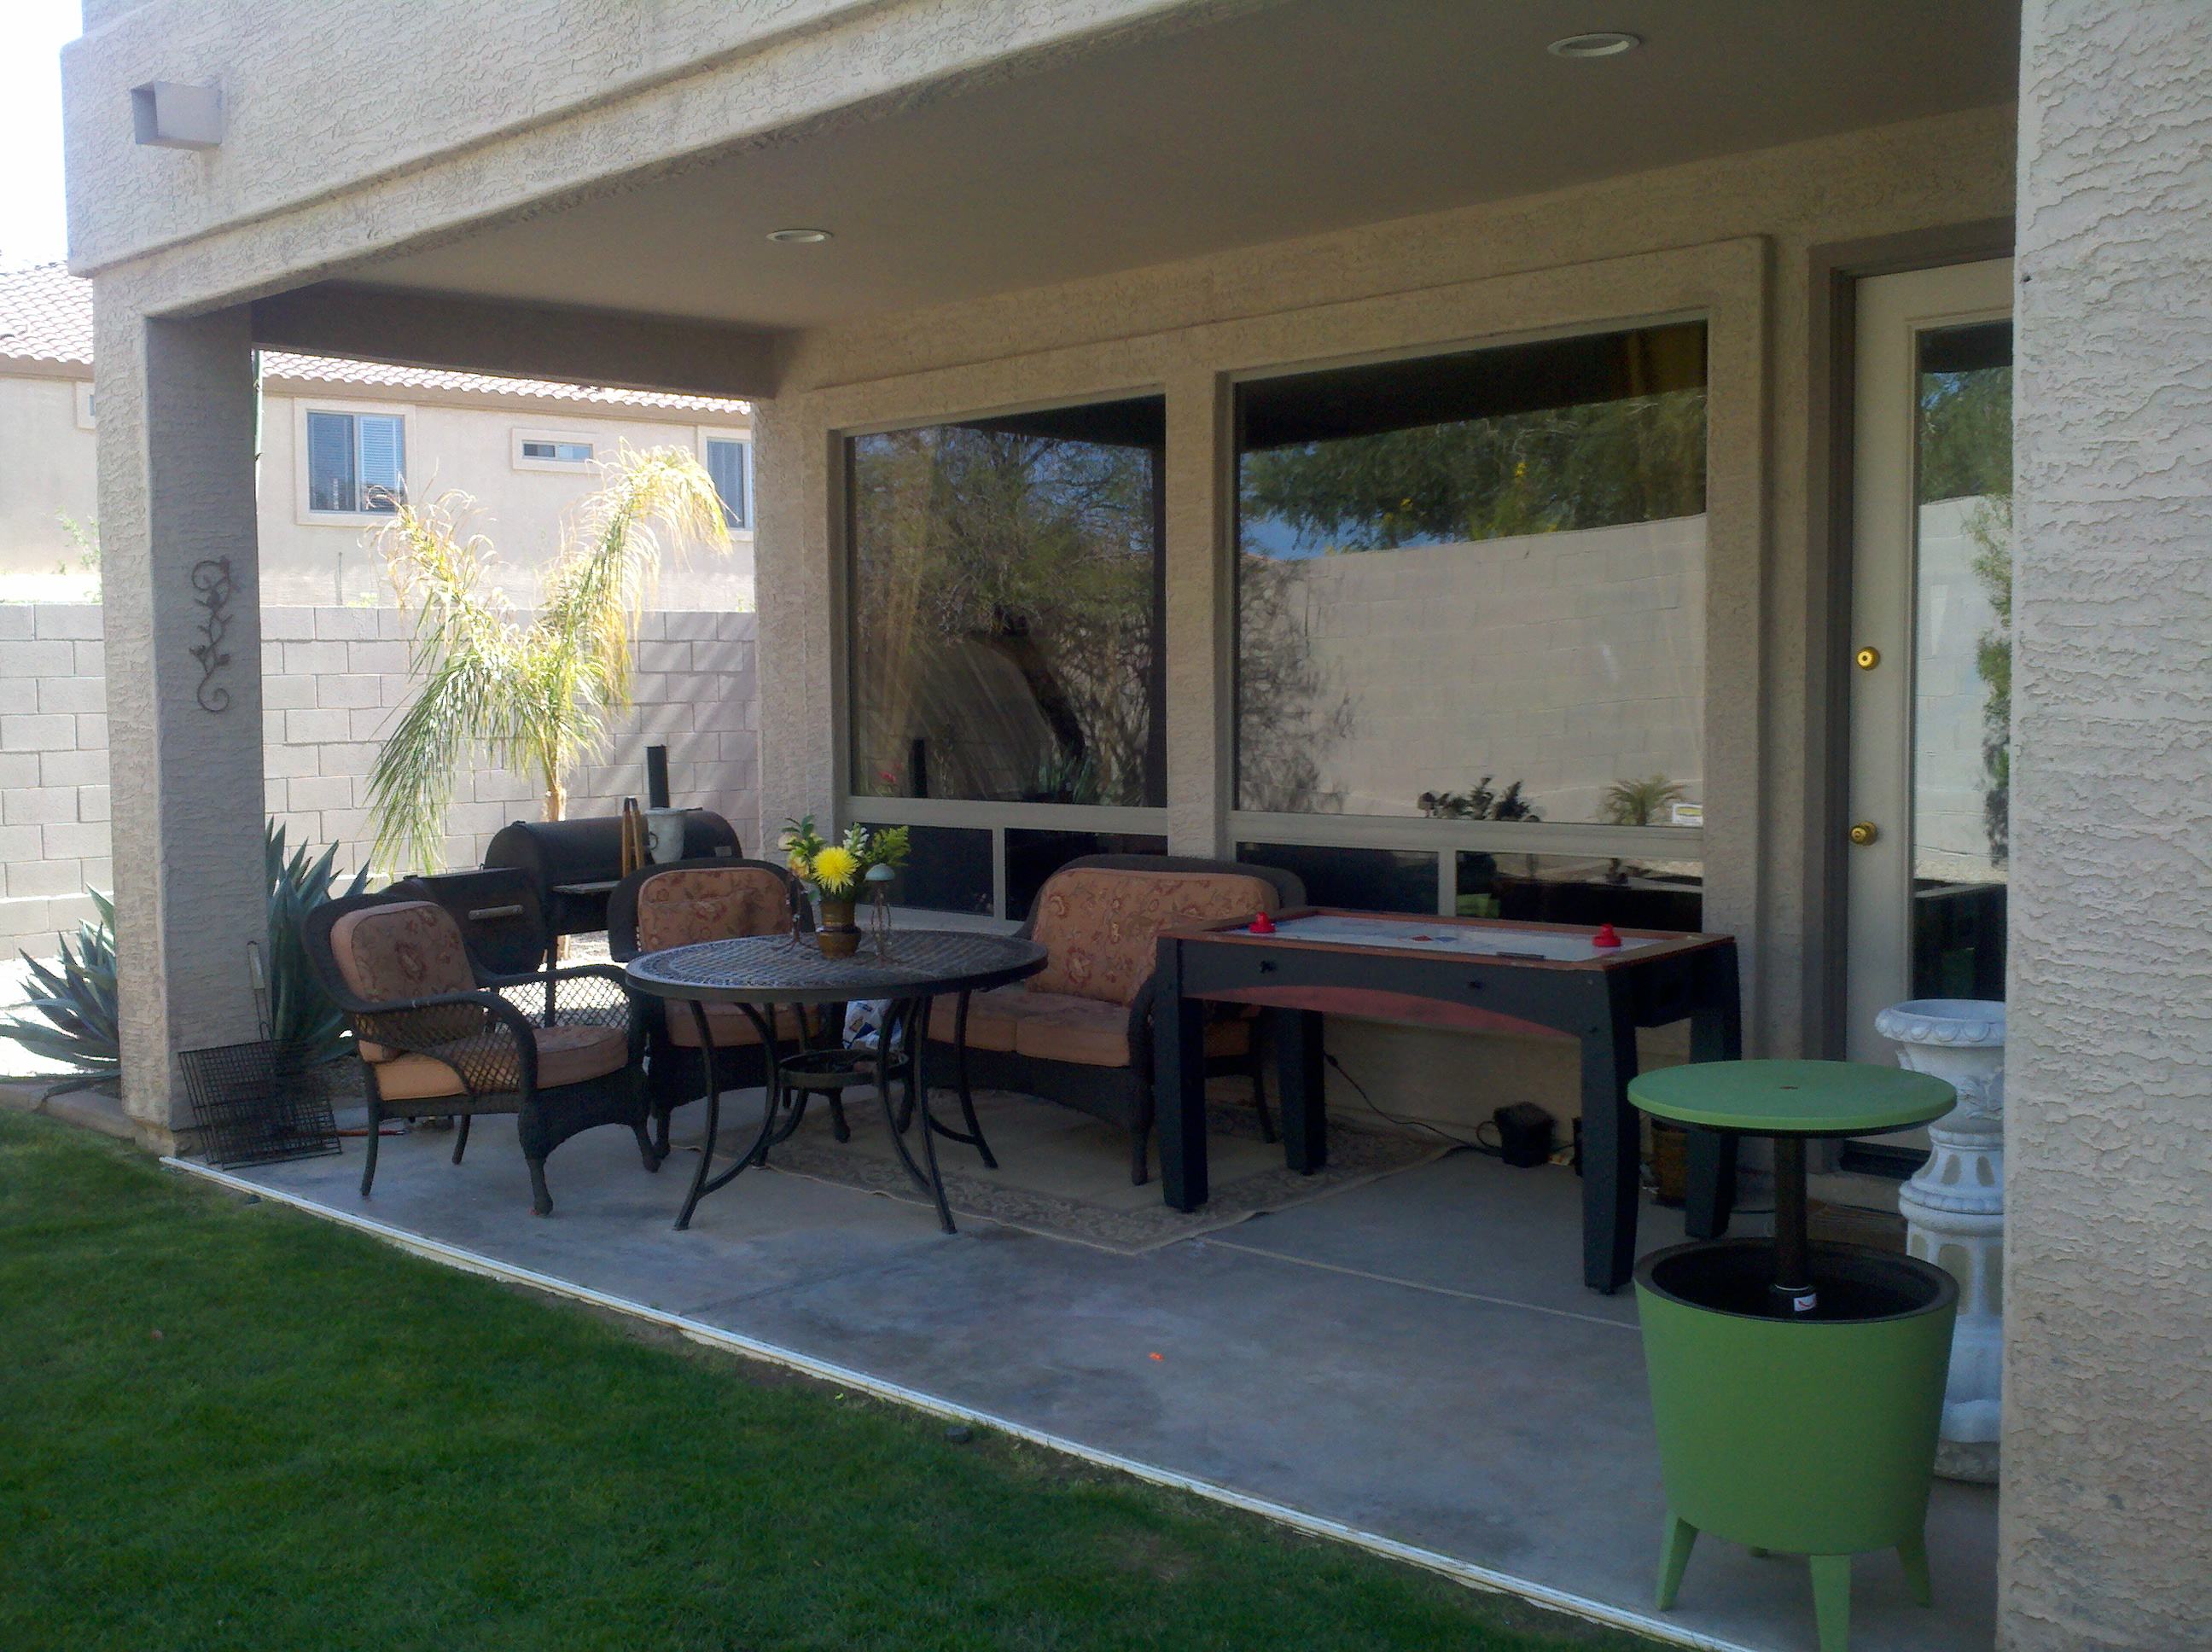 An Easy & Pleasing Patio Makeover - ManagedMoms.com on Patio Makeovers On A Budget id=93215